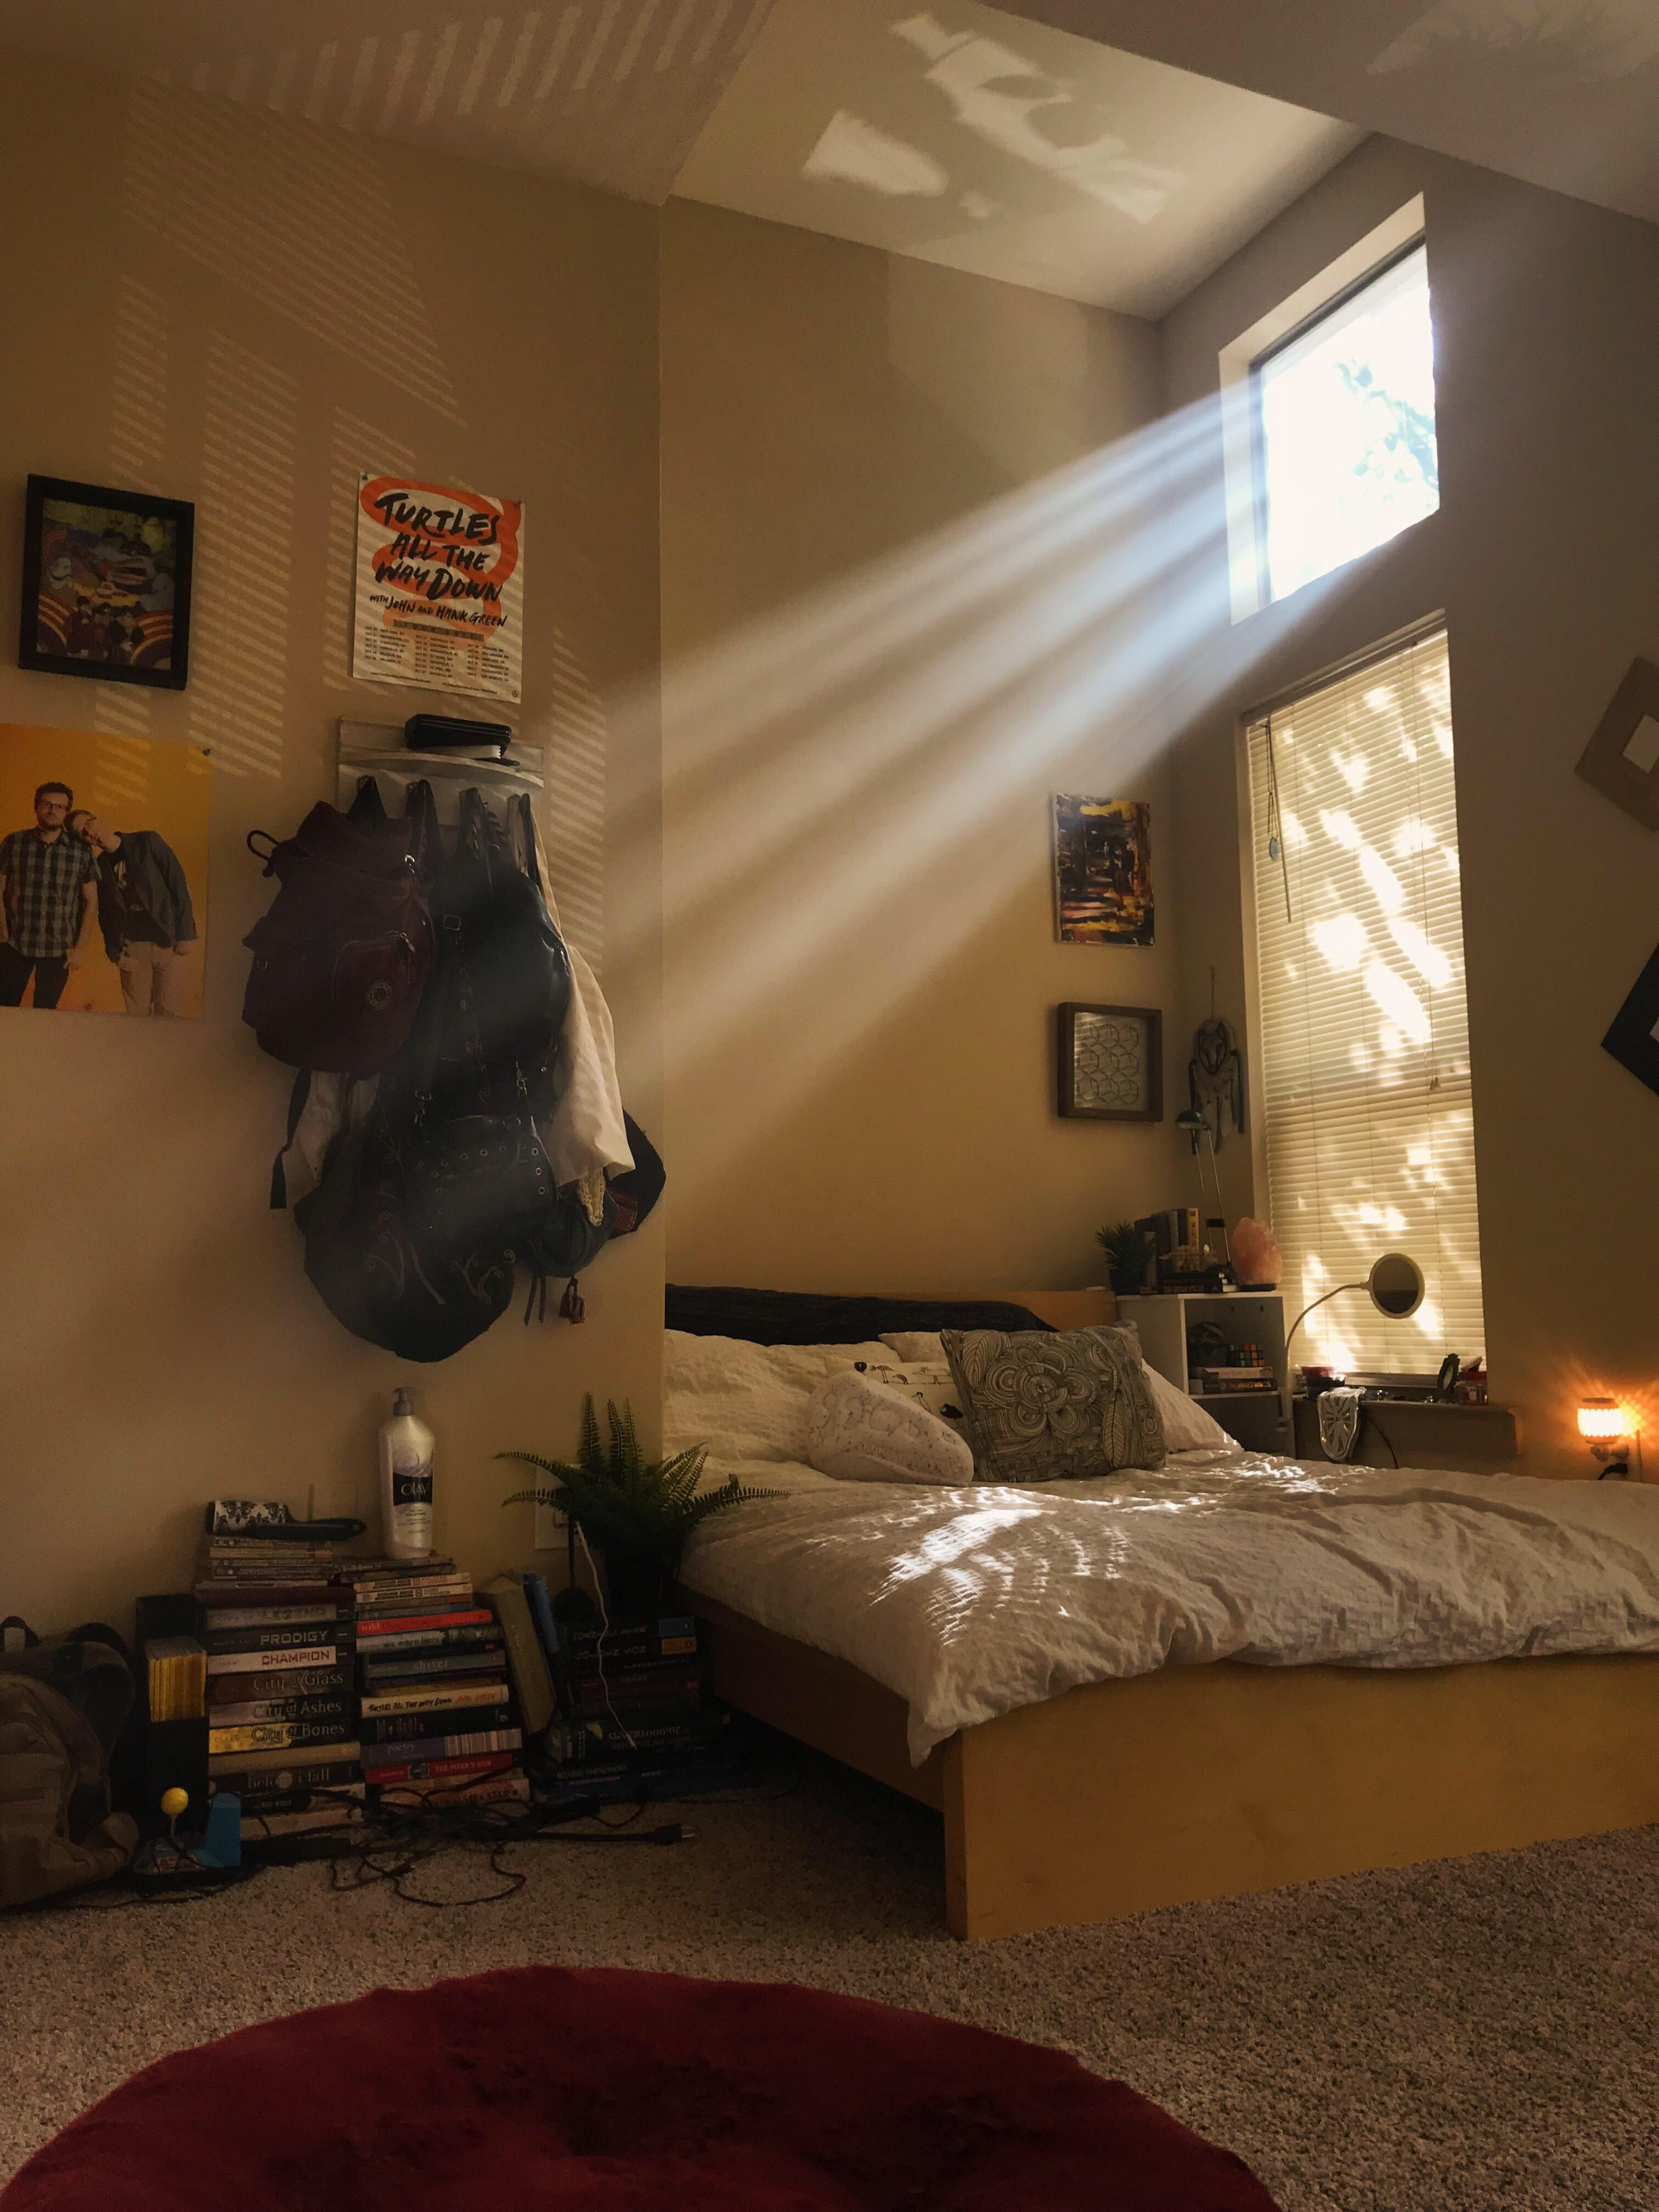 Pin By Anna On Set Design Aesthetic Bedroom Dream Rooms